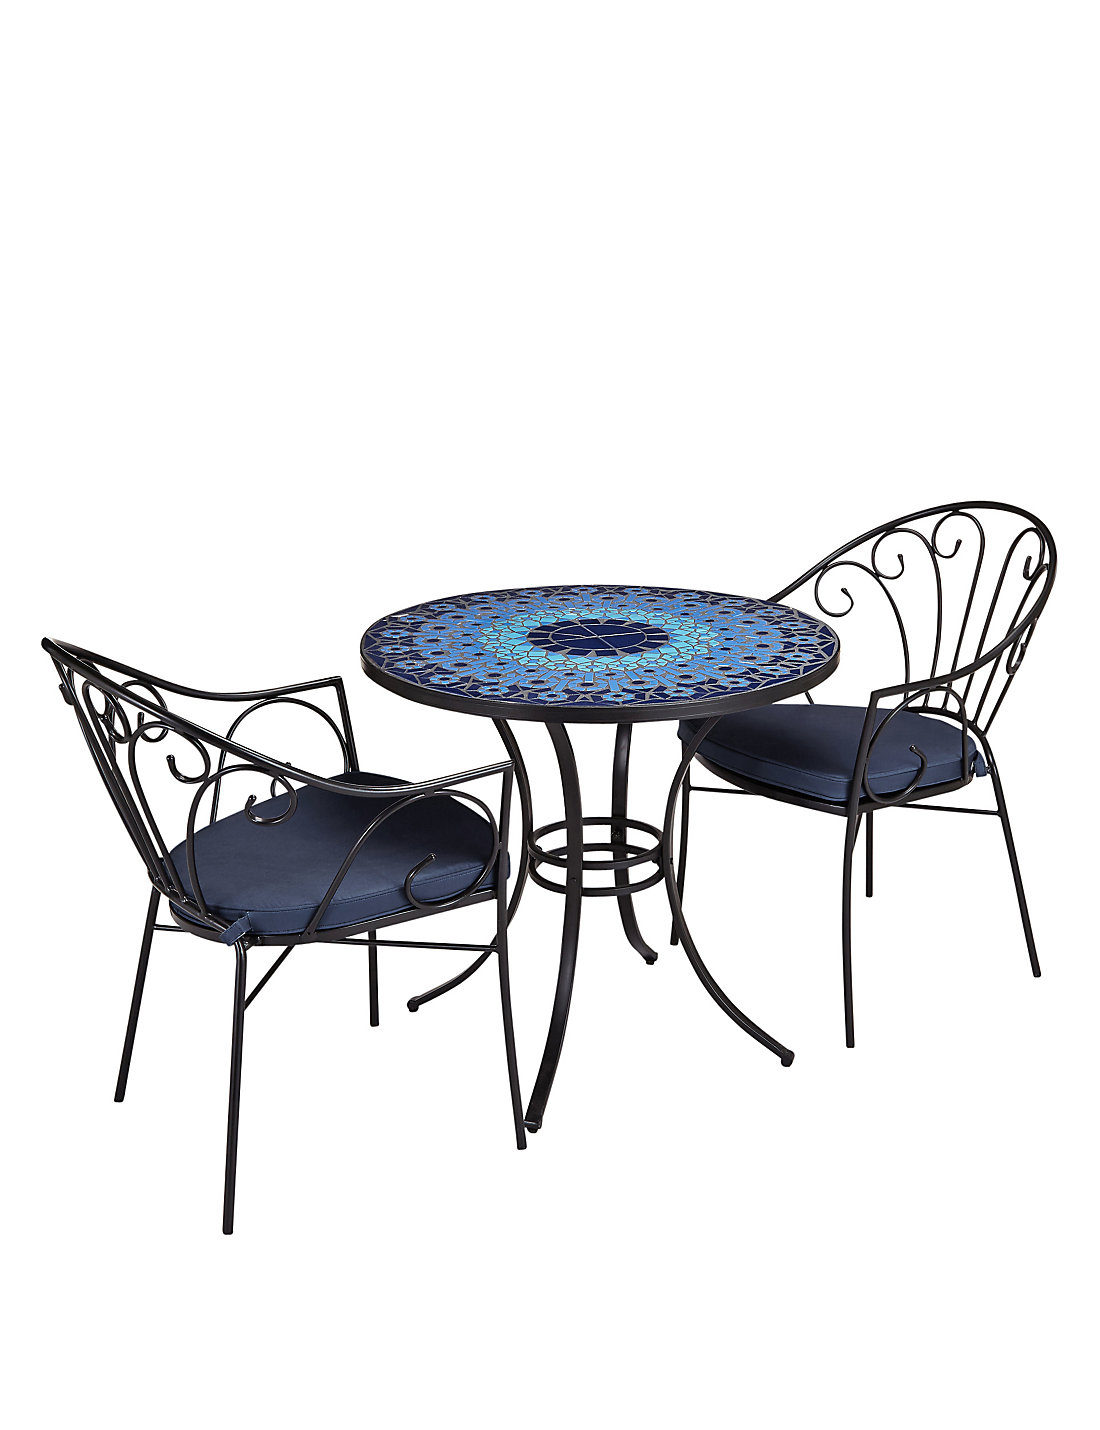 Katerini Table U0026 2 Chairs